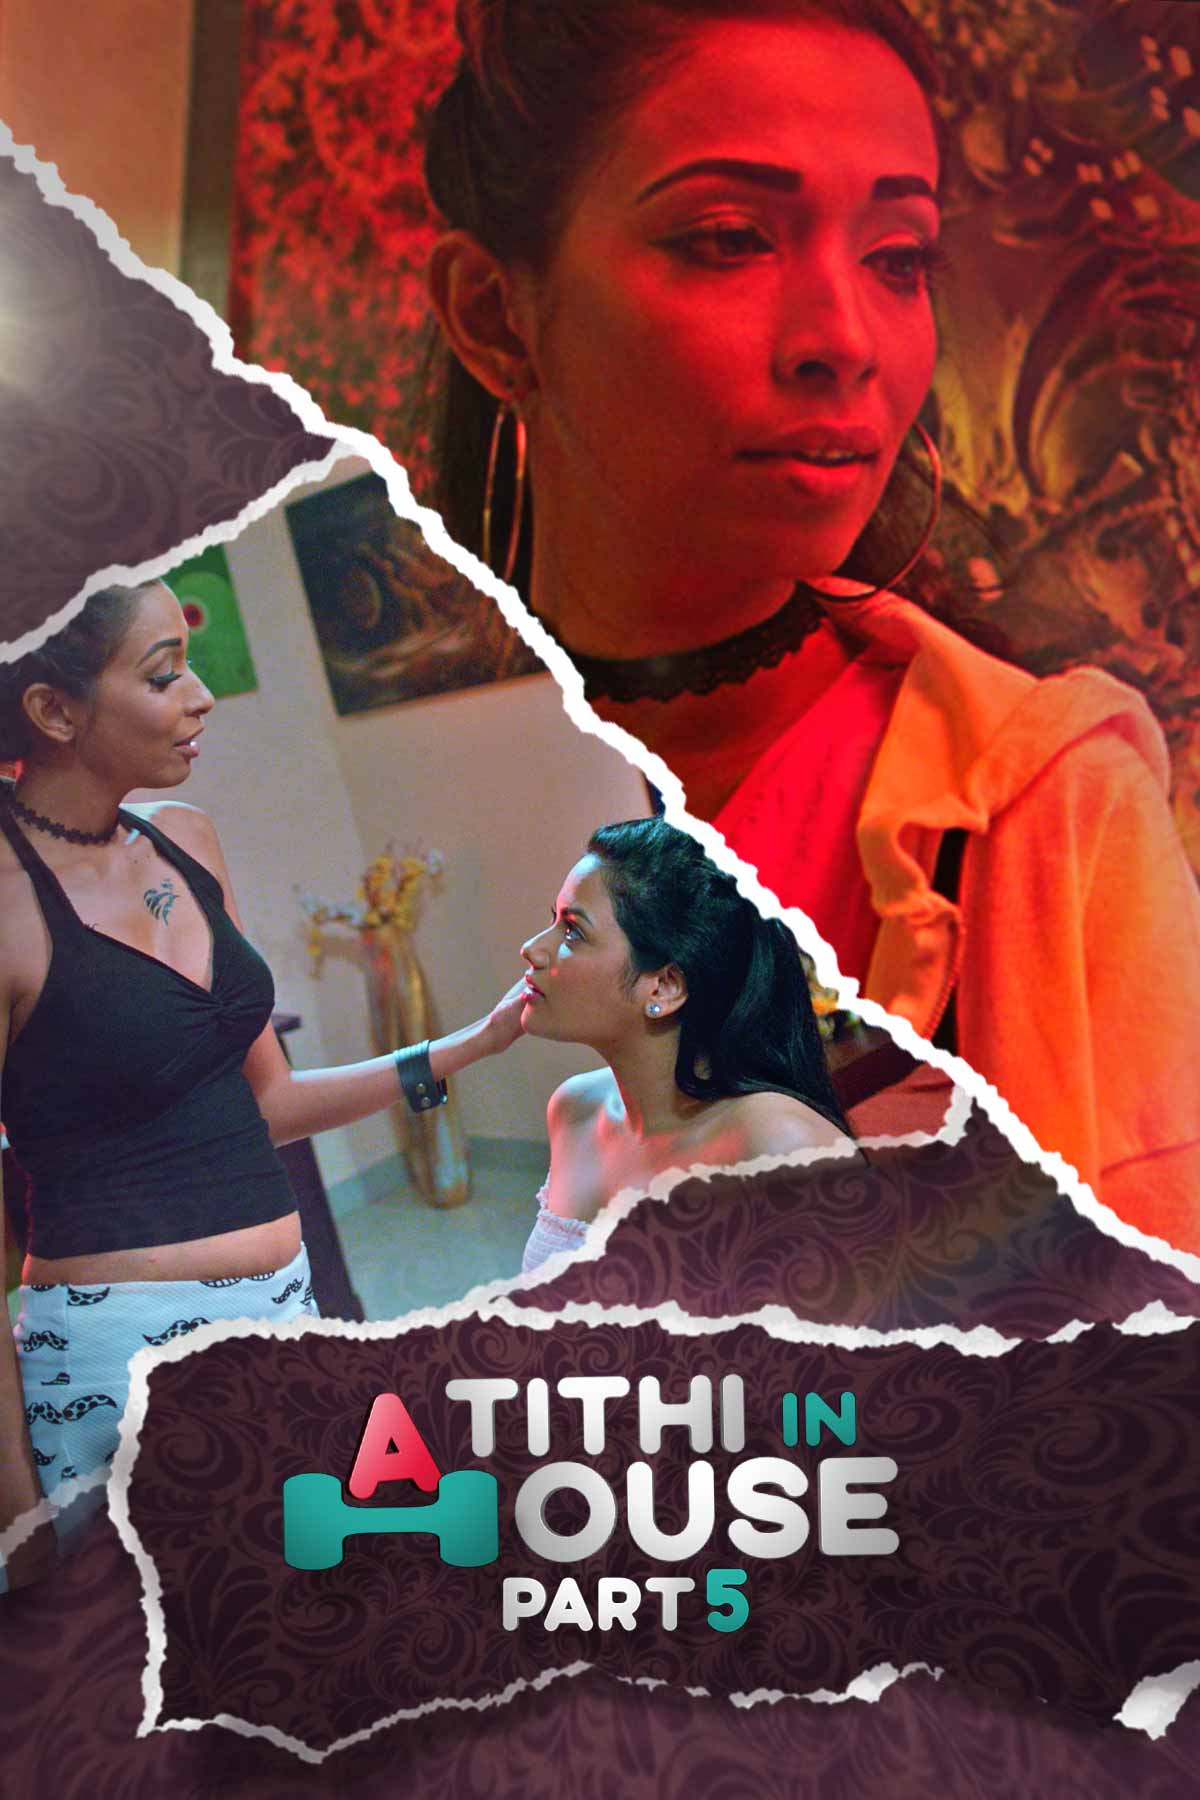 Atithi In House Part 5 2021 KooKu Originals Hindi Short Film 720p HDRip 110MB Download